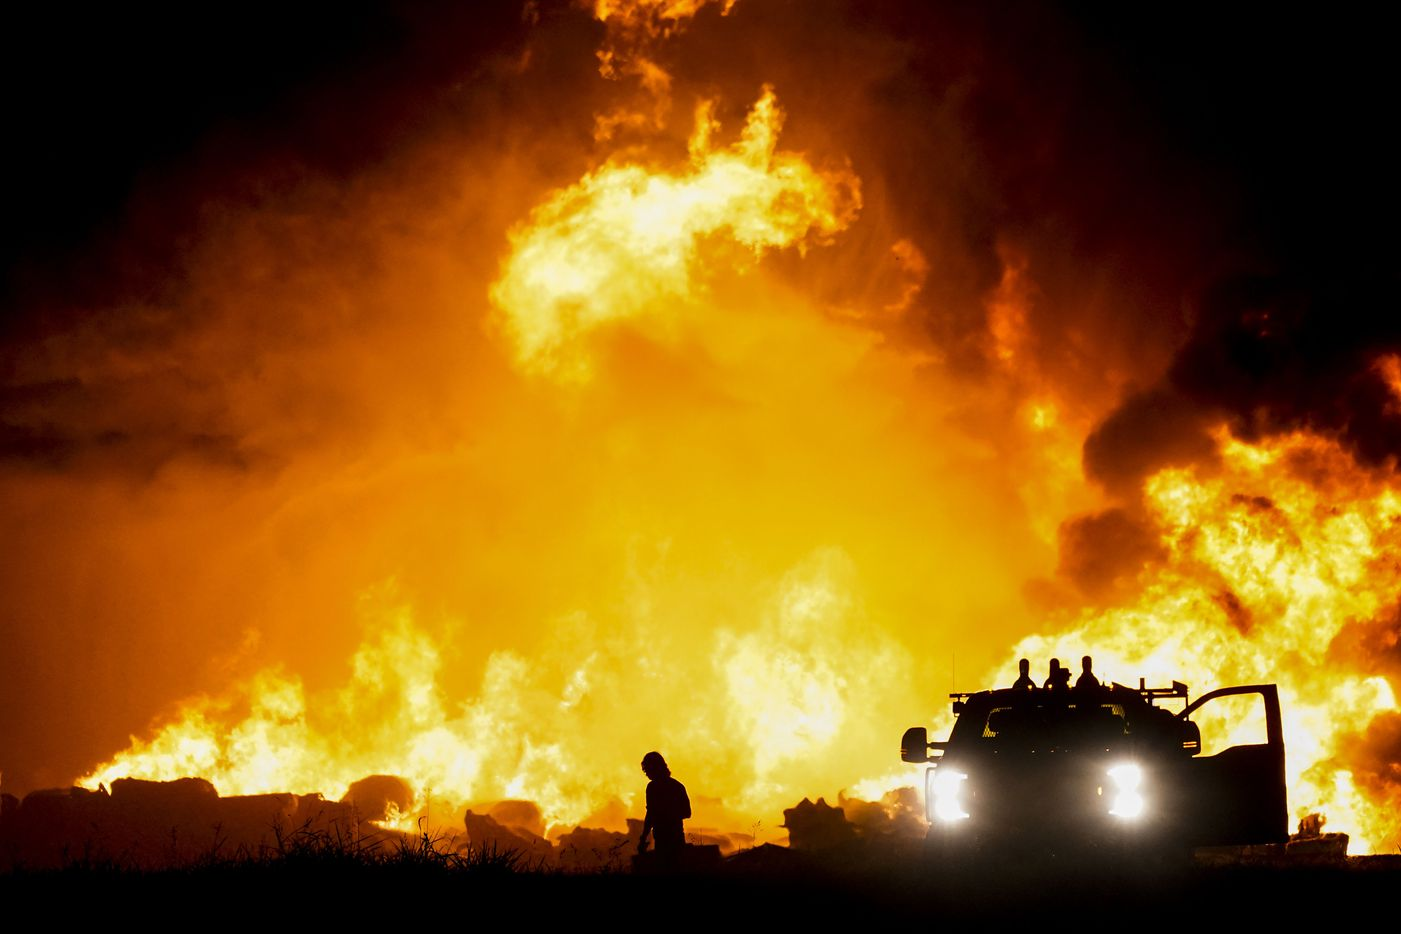 Fire crews battle a massive blaze in an industrial area of Grand Prairie, Texas, in the early morning hours of Wednesday, Aug. 19, 2020. The fire is in the 2000 block of West Marshall Drive, near the Bush Turnpike. Among the businesses in the area is Poly-America, a company that produces trash bags and other plastic products. (Smiley N. Pool/The Dallas Morning News)